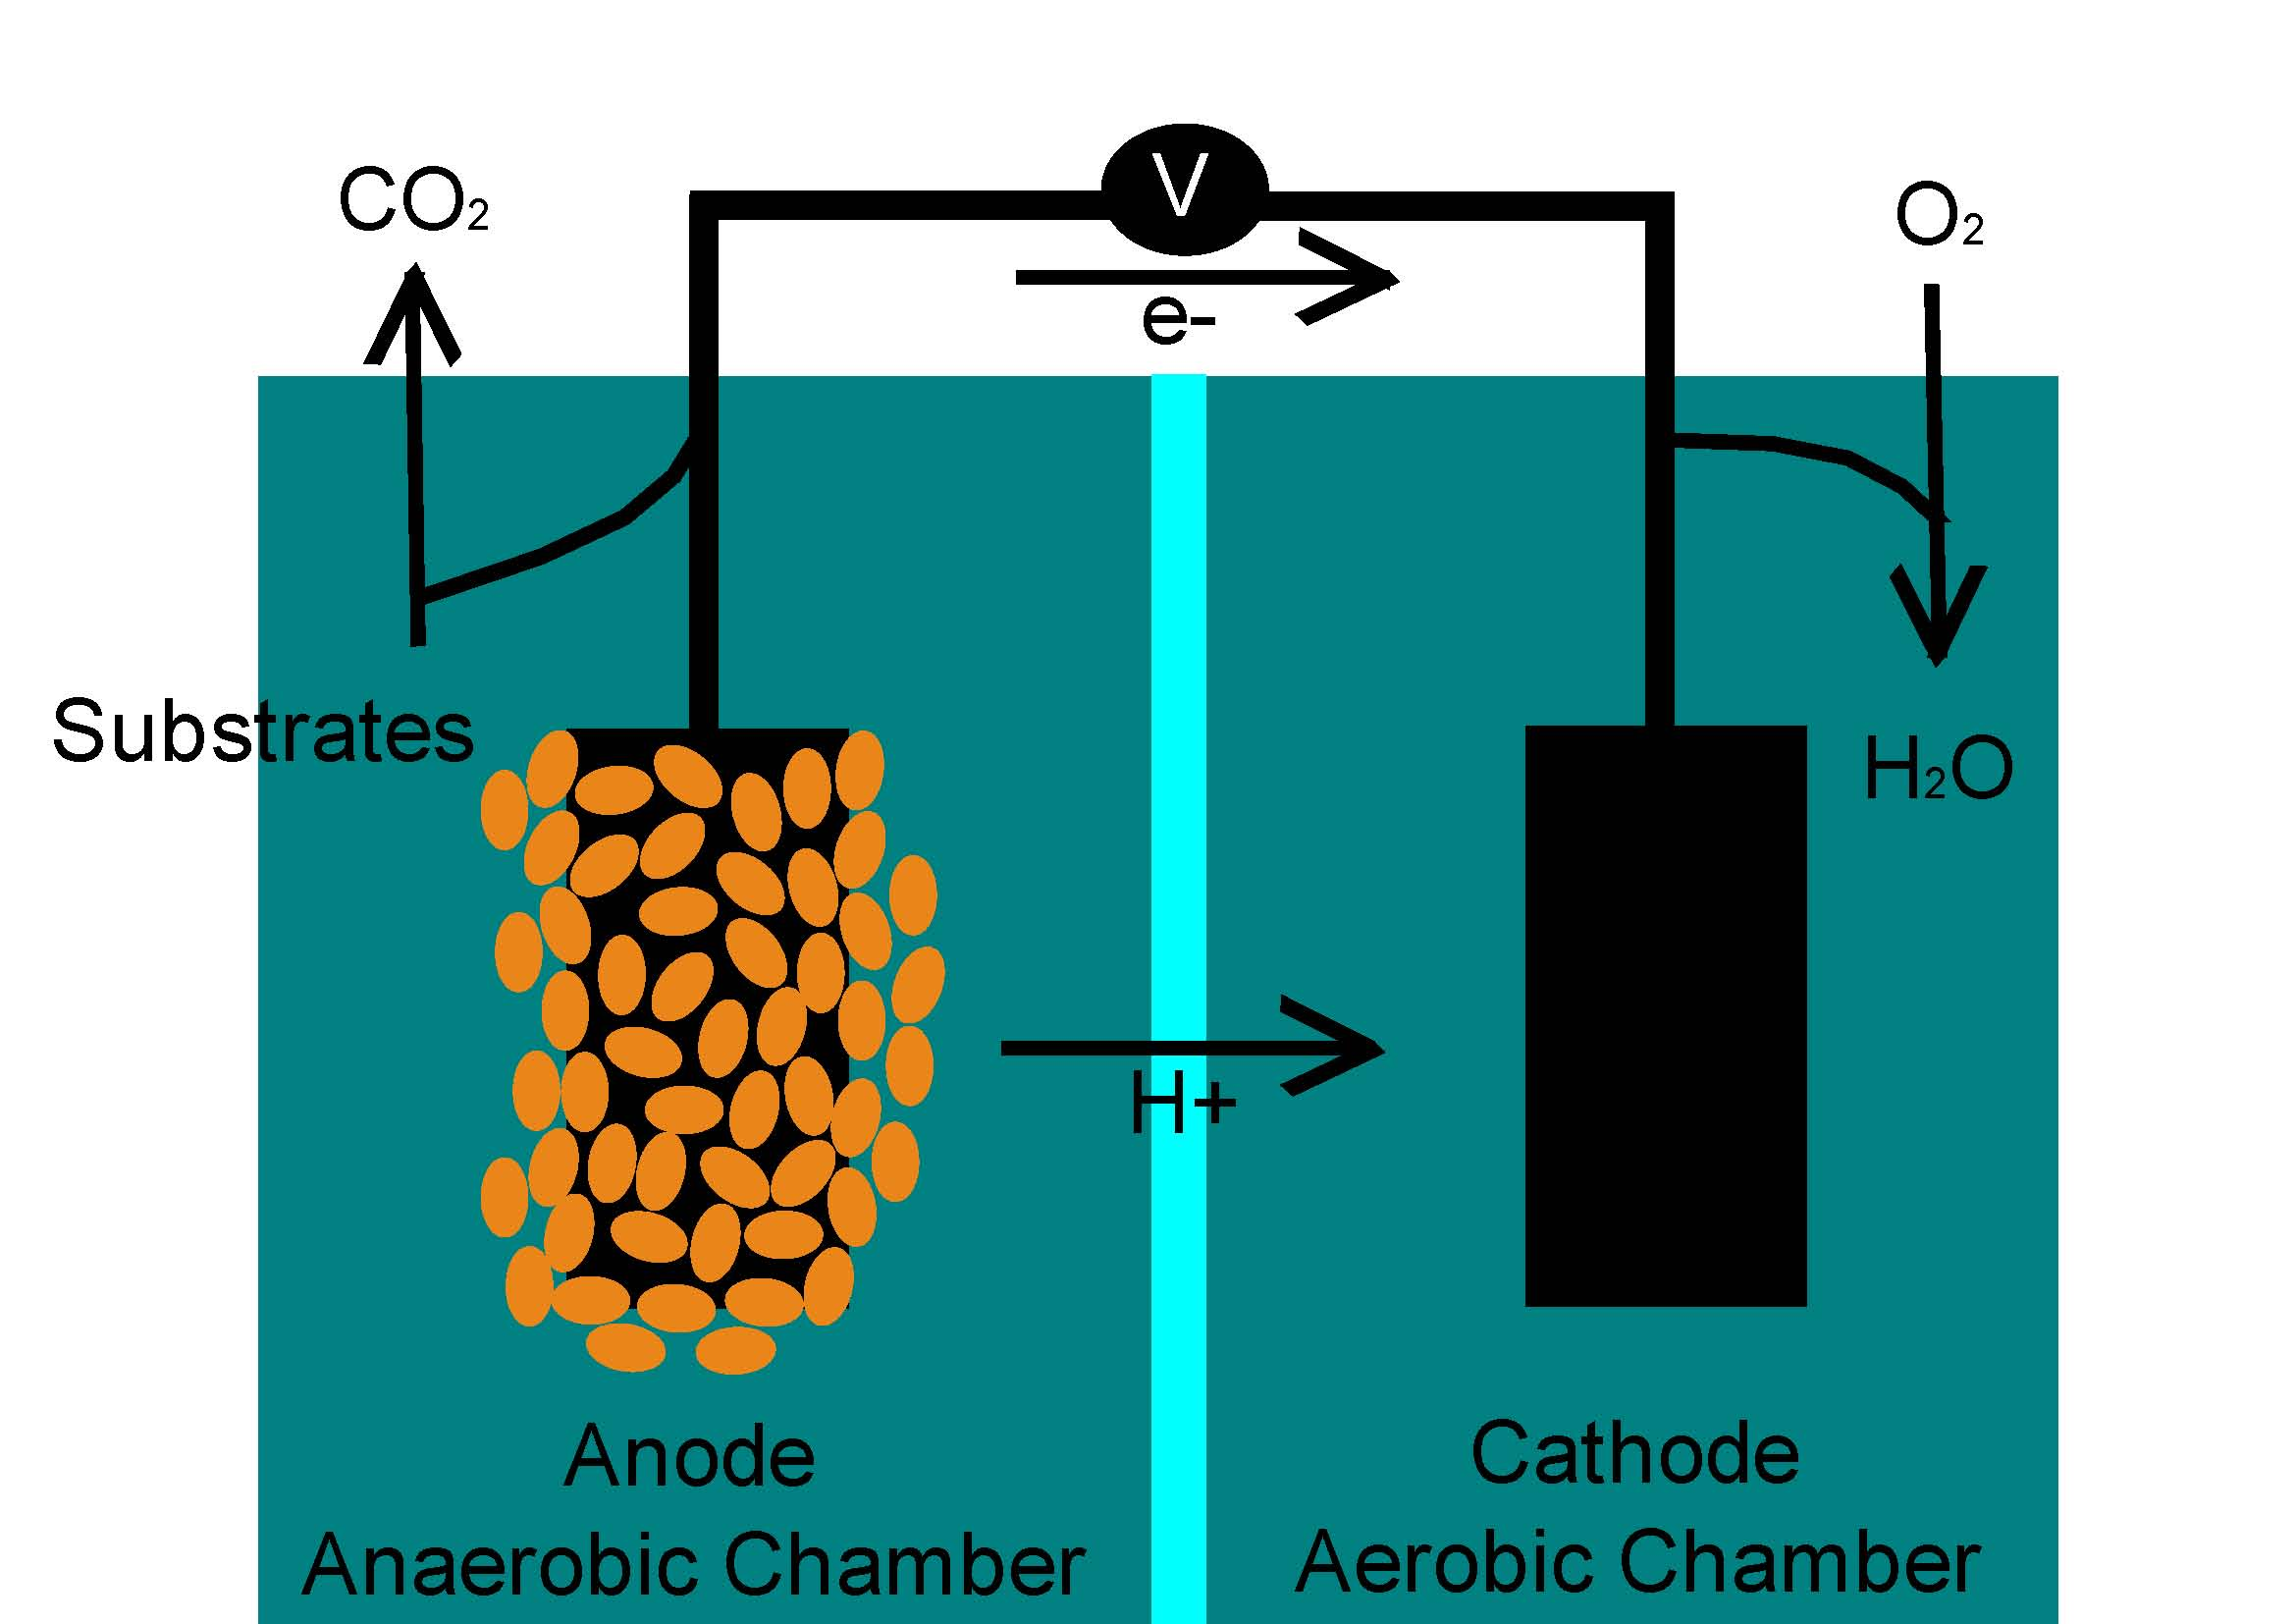 content_article_profile_image_a6578077a6c74033a58b02227aa5a6e49595e4fd_4840 turning methane into electricity with bacteria earth and the